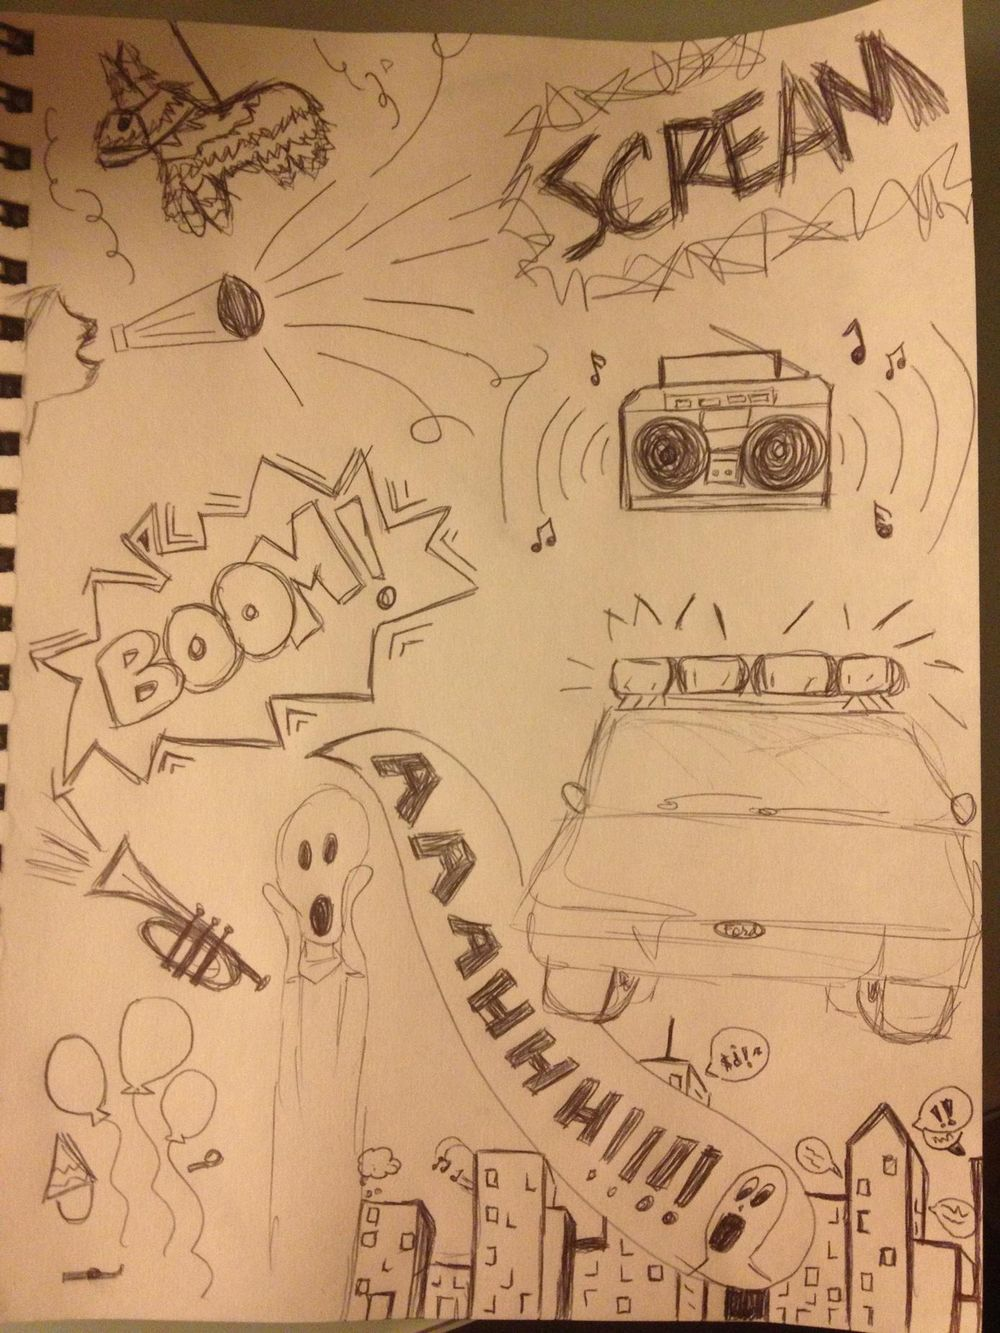 Call me LOUD sketch! - image 1 - student project